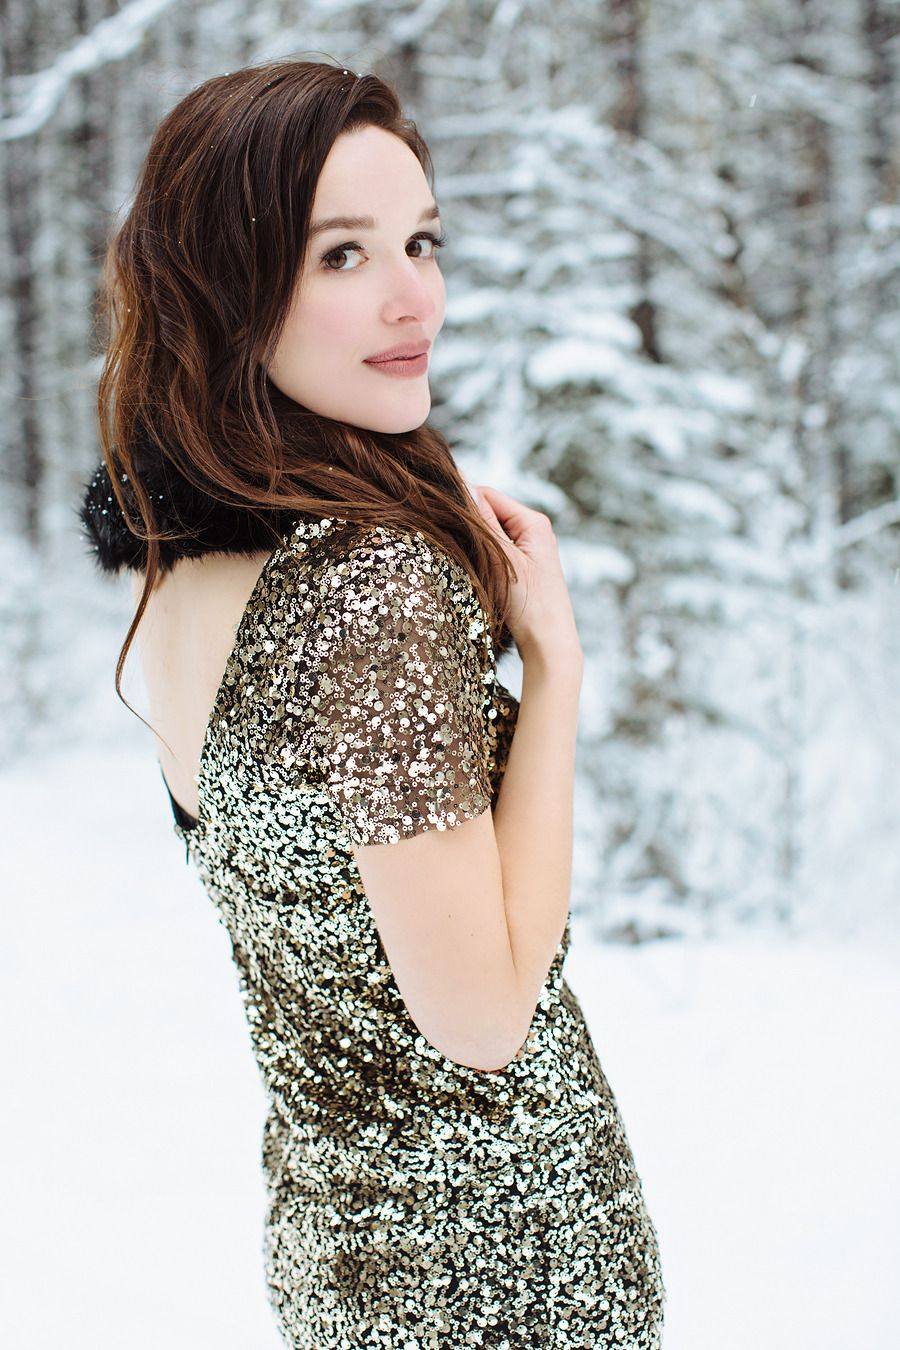 Sequins and the snow always make a good combination. Photography: Jacqueline Elizabeth Photography - www.jacquelineelizabeth.com Read More: http://www.stylemepretty.com/canada-weddings/2014/05/07/elegant-winter-engagement-session/